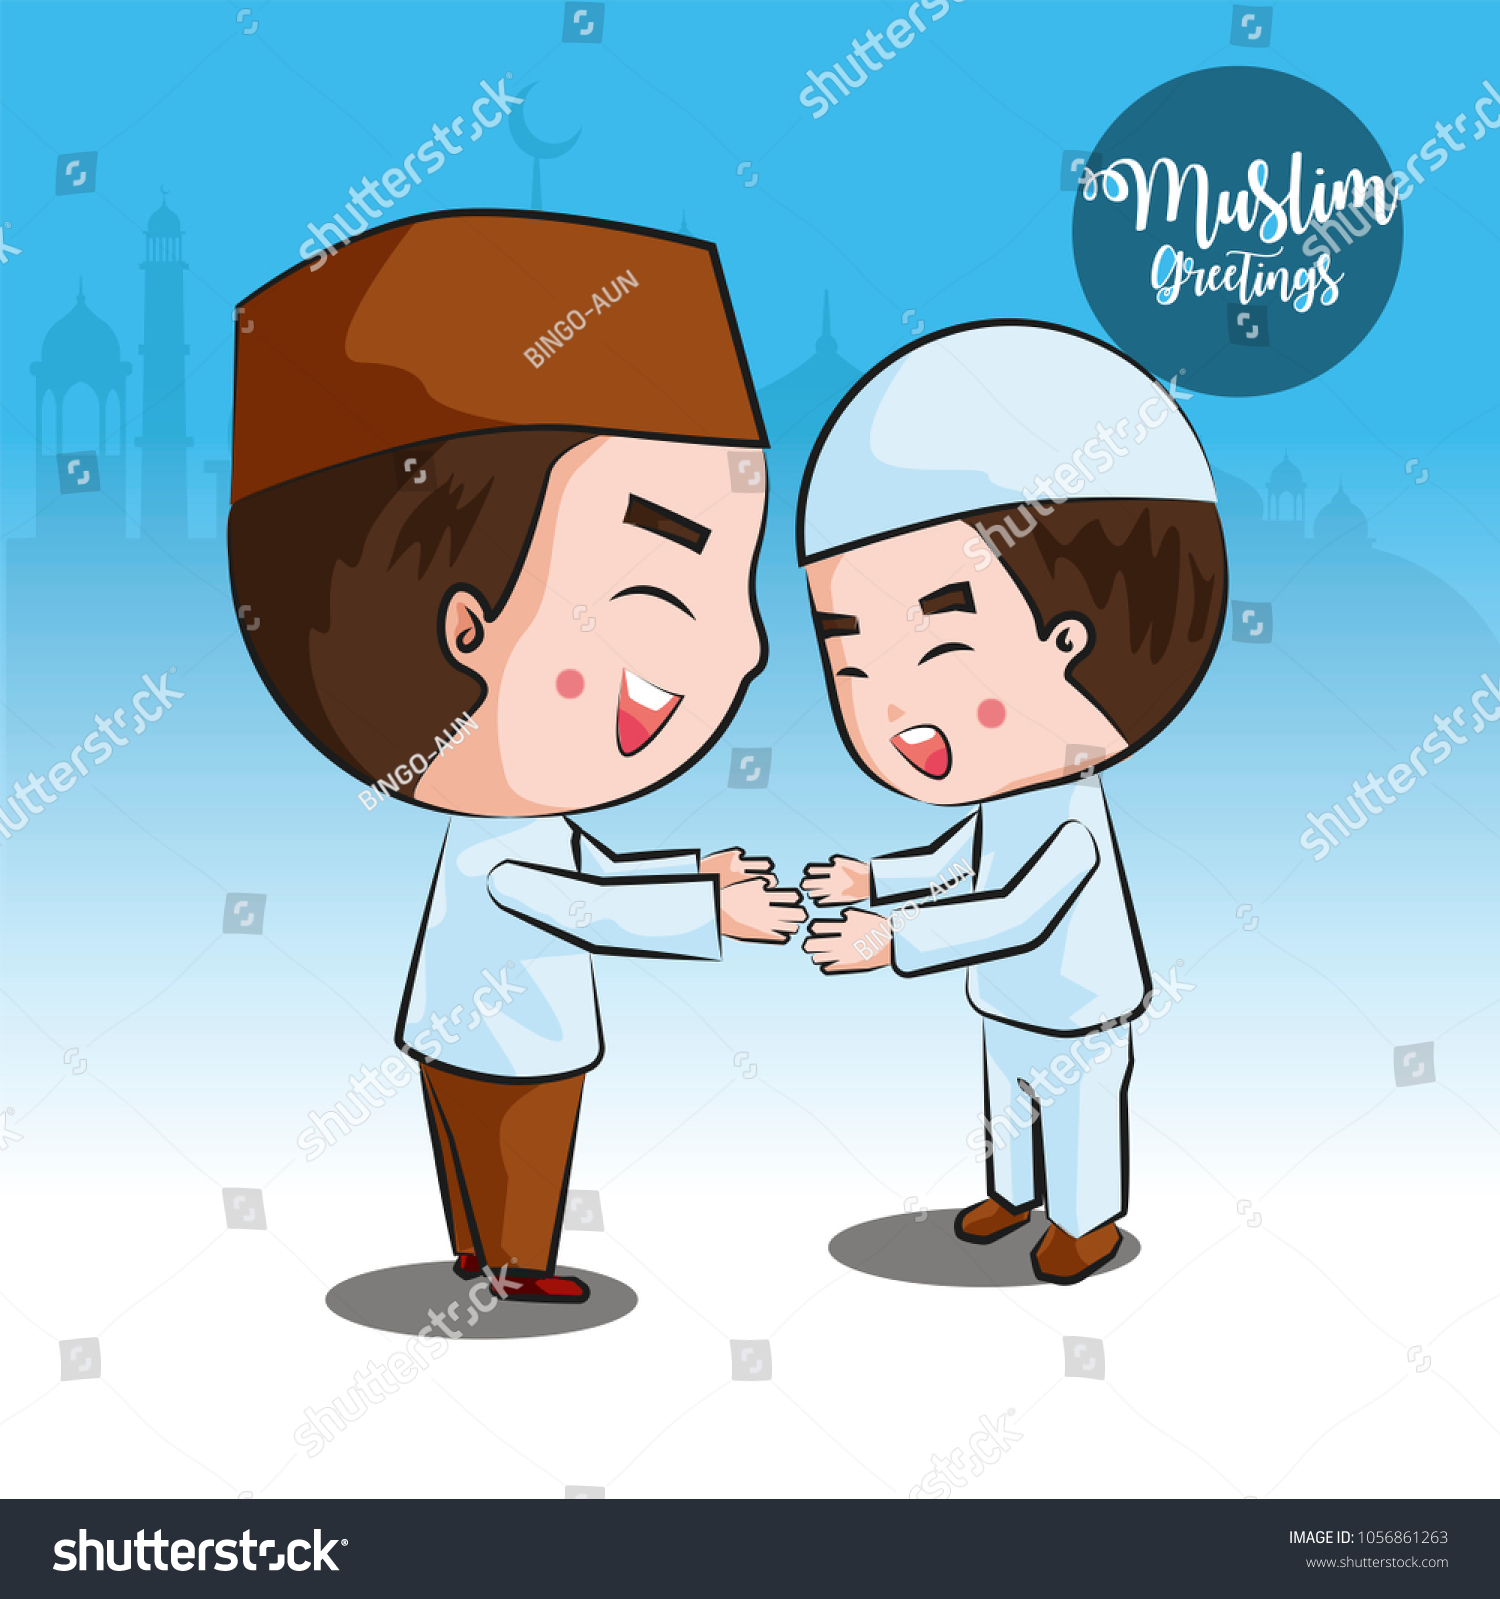 Touching hand greeting muslims world stock vector hd royalty free touching hand is the greeting of the muslims of the world m4hsunfo